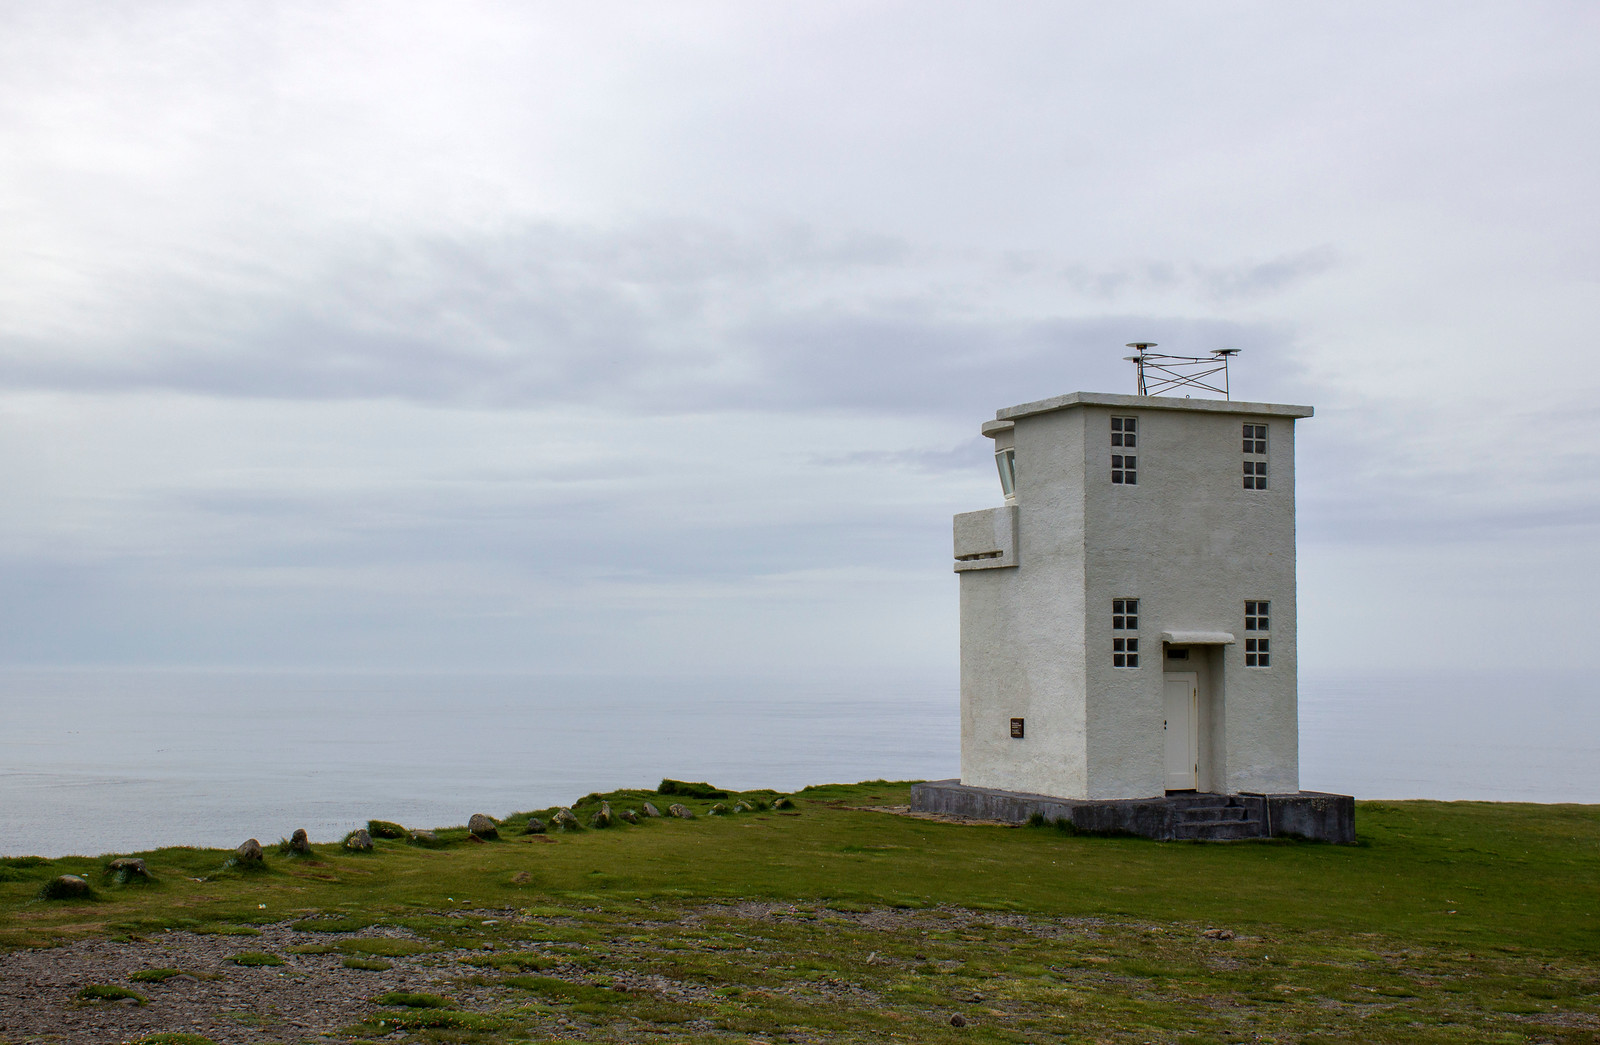 Bjargtangar lighthouse at Latrabjarg bird cliffs in Westfjords, Iceland.